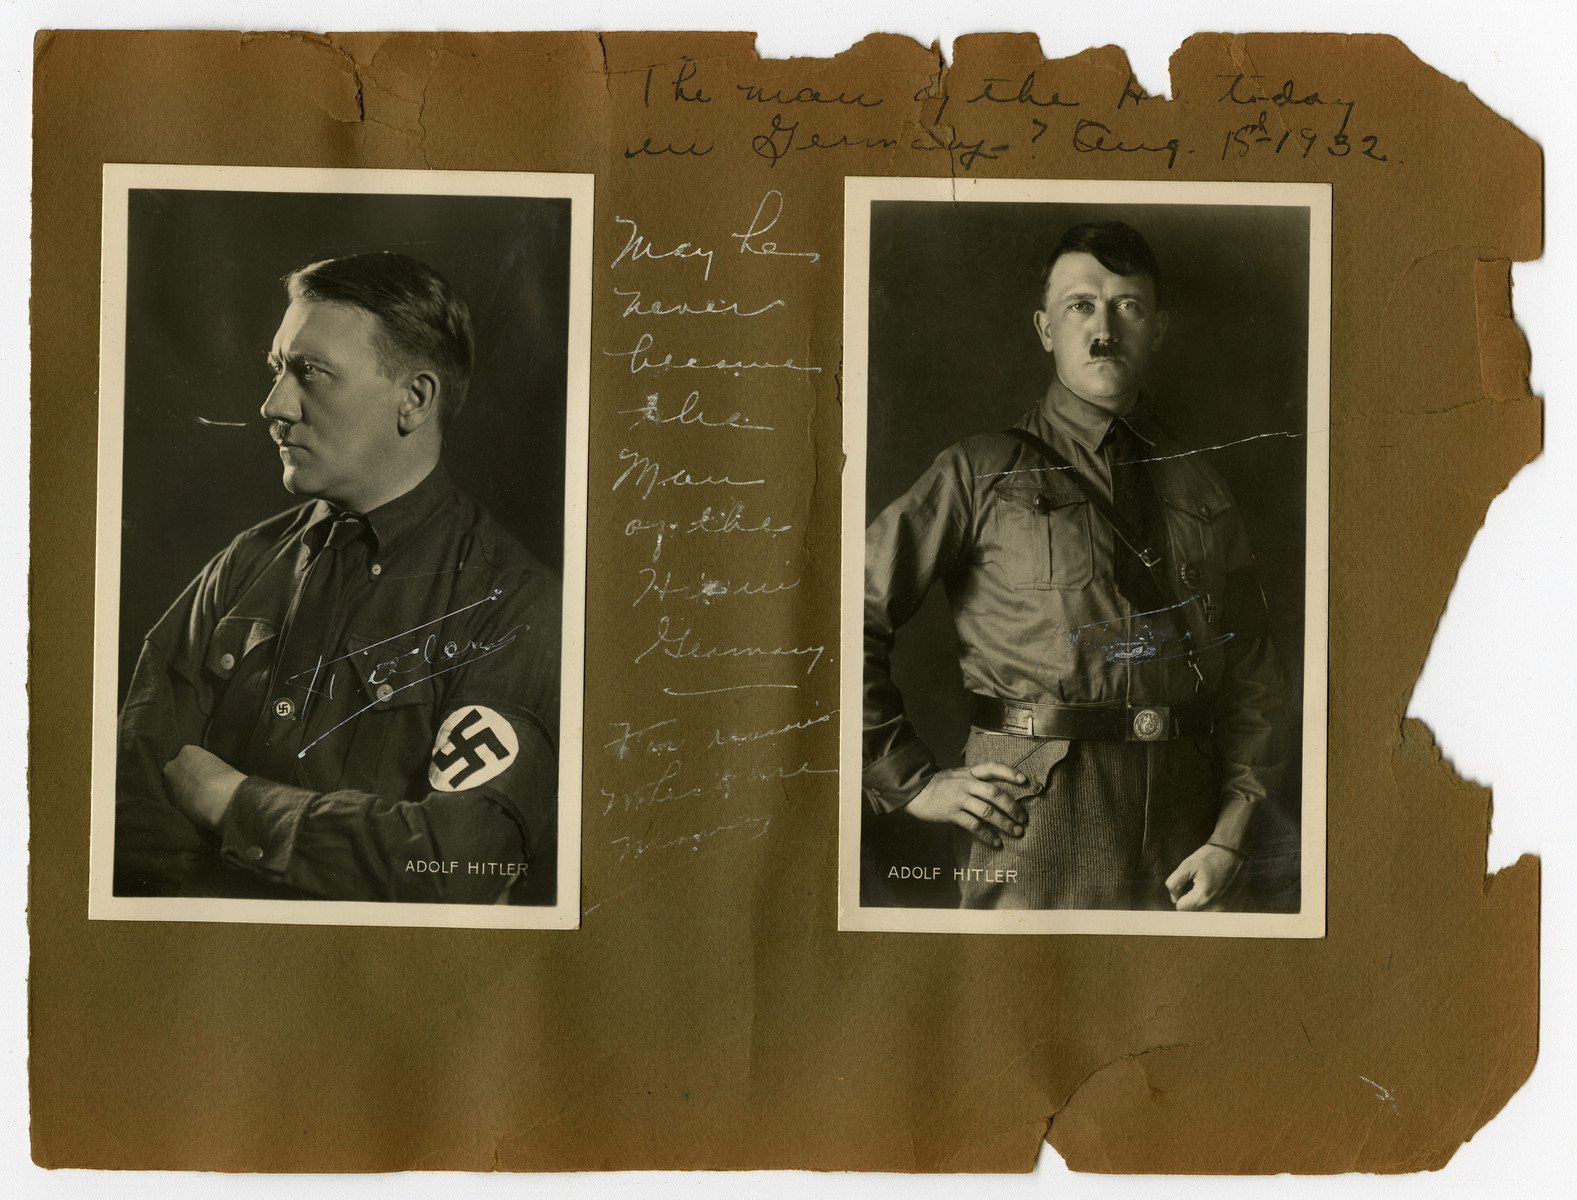 """Album page with two portraits of  Adolf Hitler in 1932.   Original caption on album page reads, """"The man of the hour today in Germany? Aug. 15, 1932."""" A second caption reads, """"May he never become the man of the hour in Germany."""""""